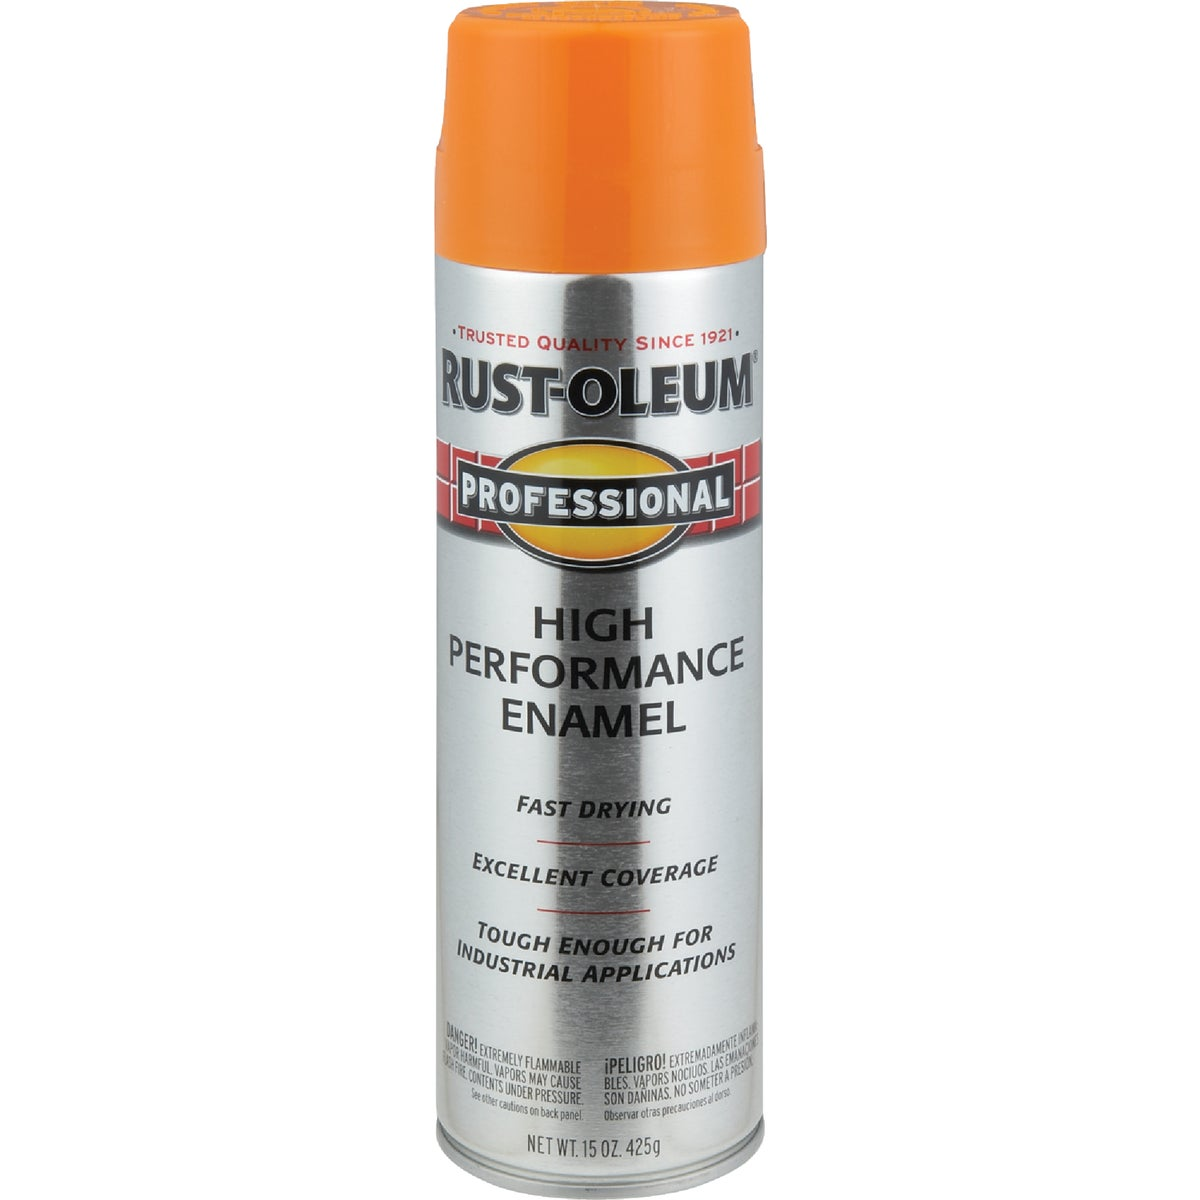 SAF ORNG PRO SPRAY PAINT - 7555-838 by Rustoleum